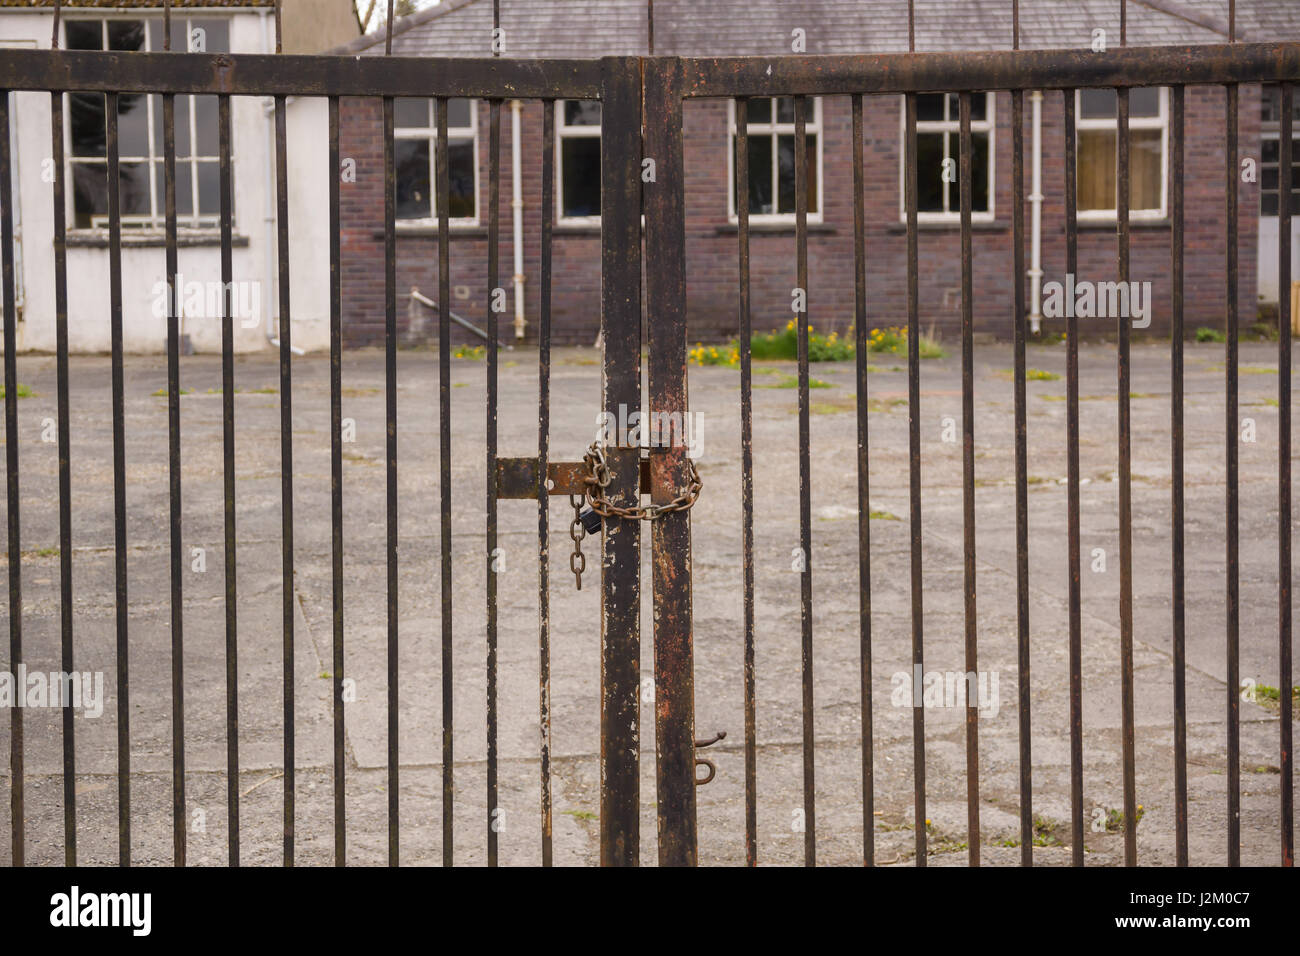 Set of locked security gates at a derelict or abandoned industrial or commercial premises - Stock Image